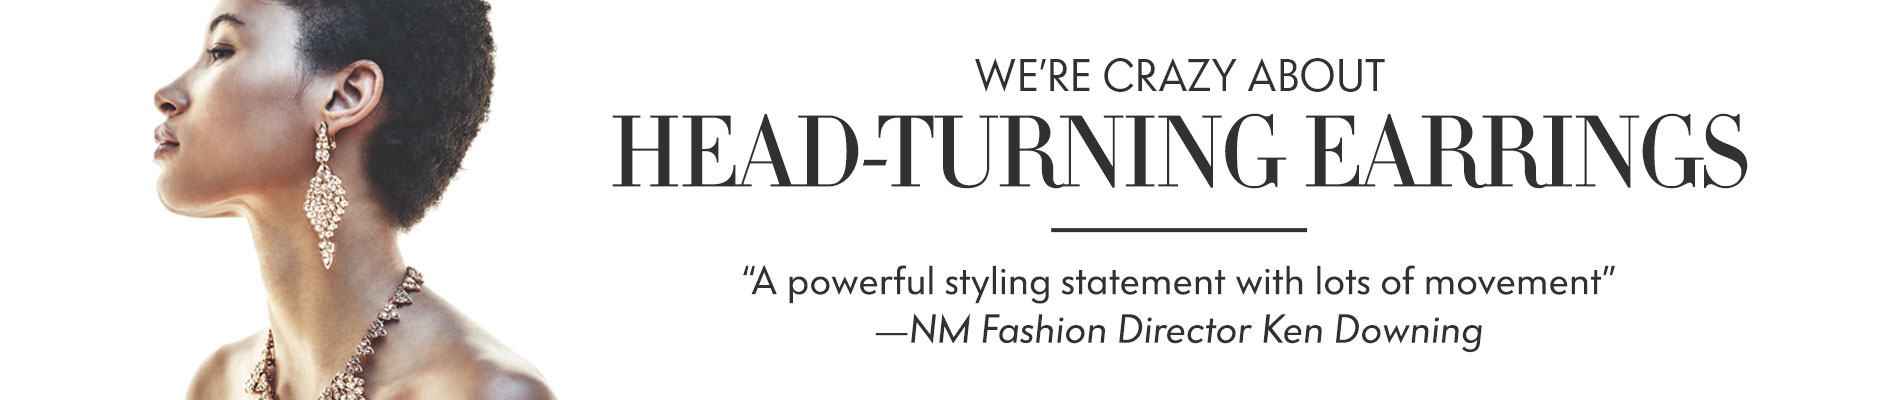 We're Crazy About Head-Turning Earrings -A powerful styling statement with lots of movement -NM Fashion Director Ken Downing